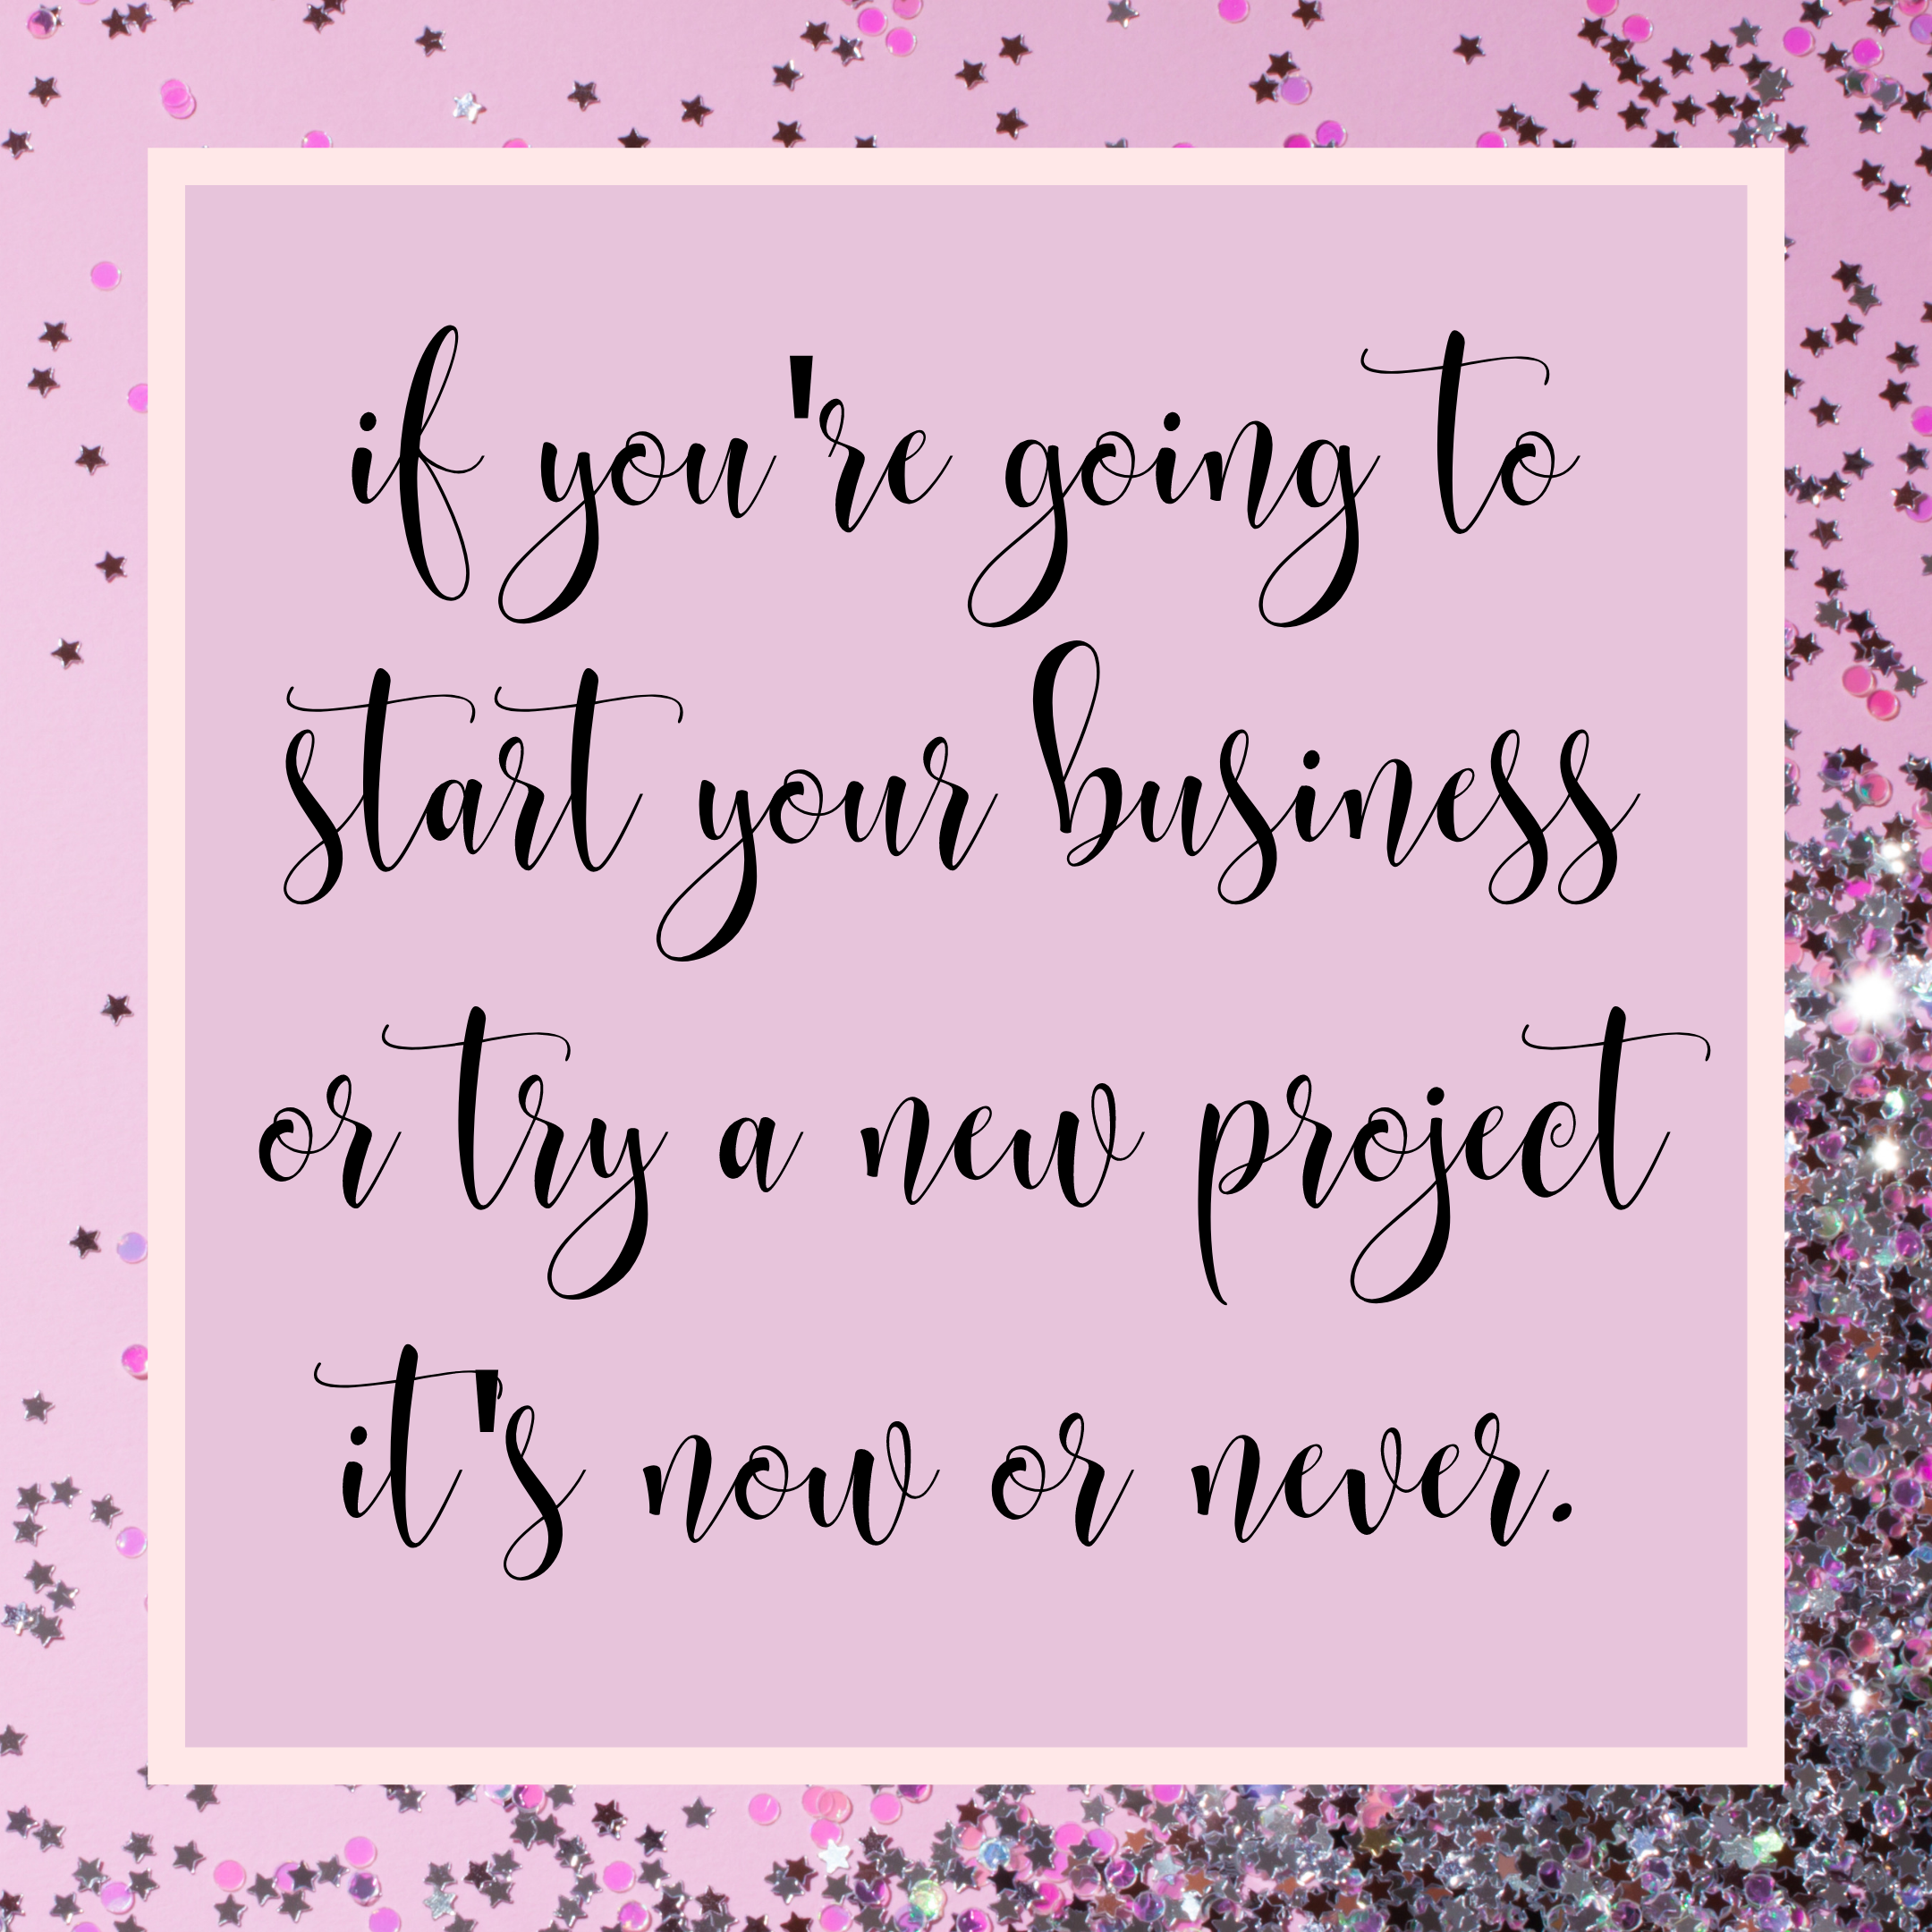 If you're gong to start a business or try a new project it's now or never.